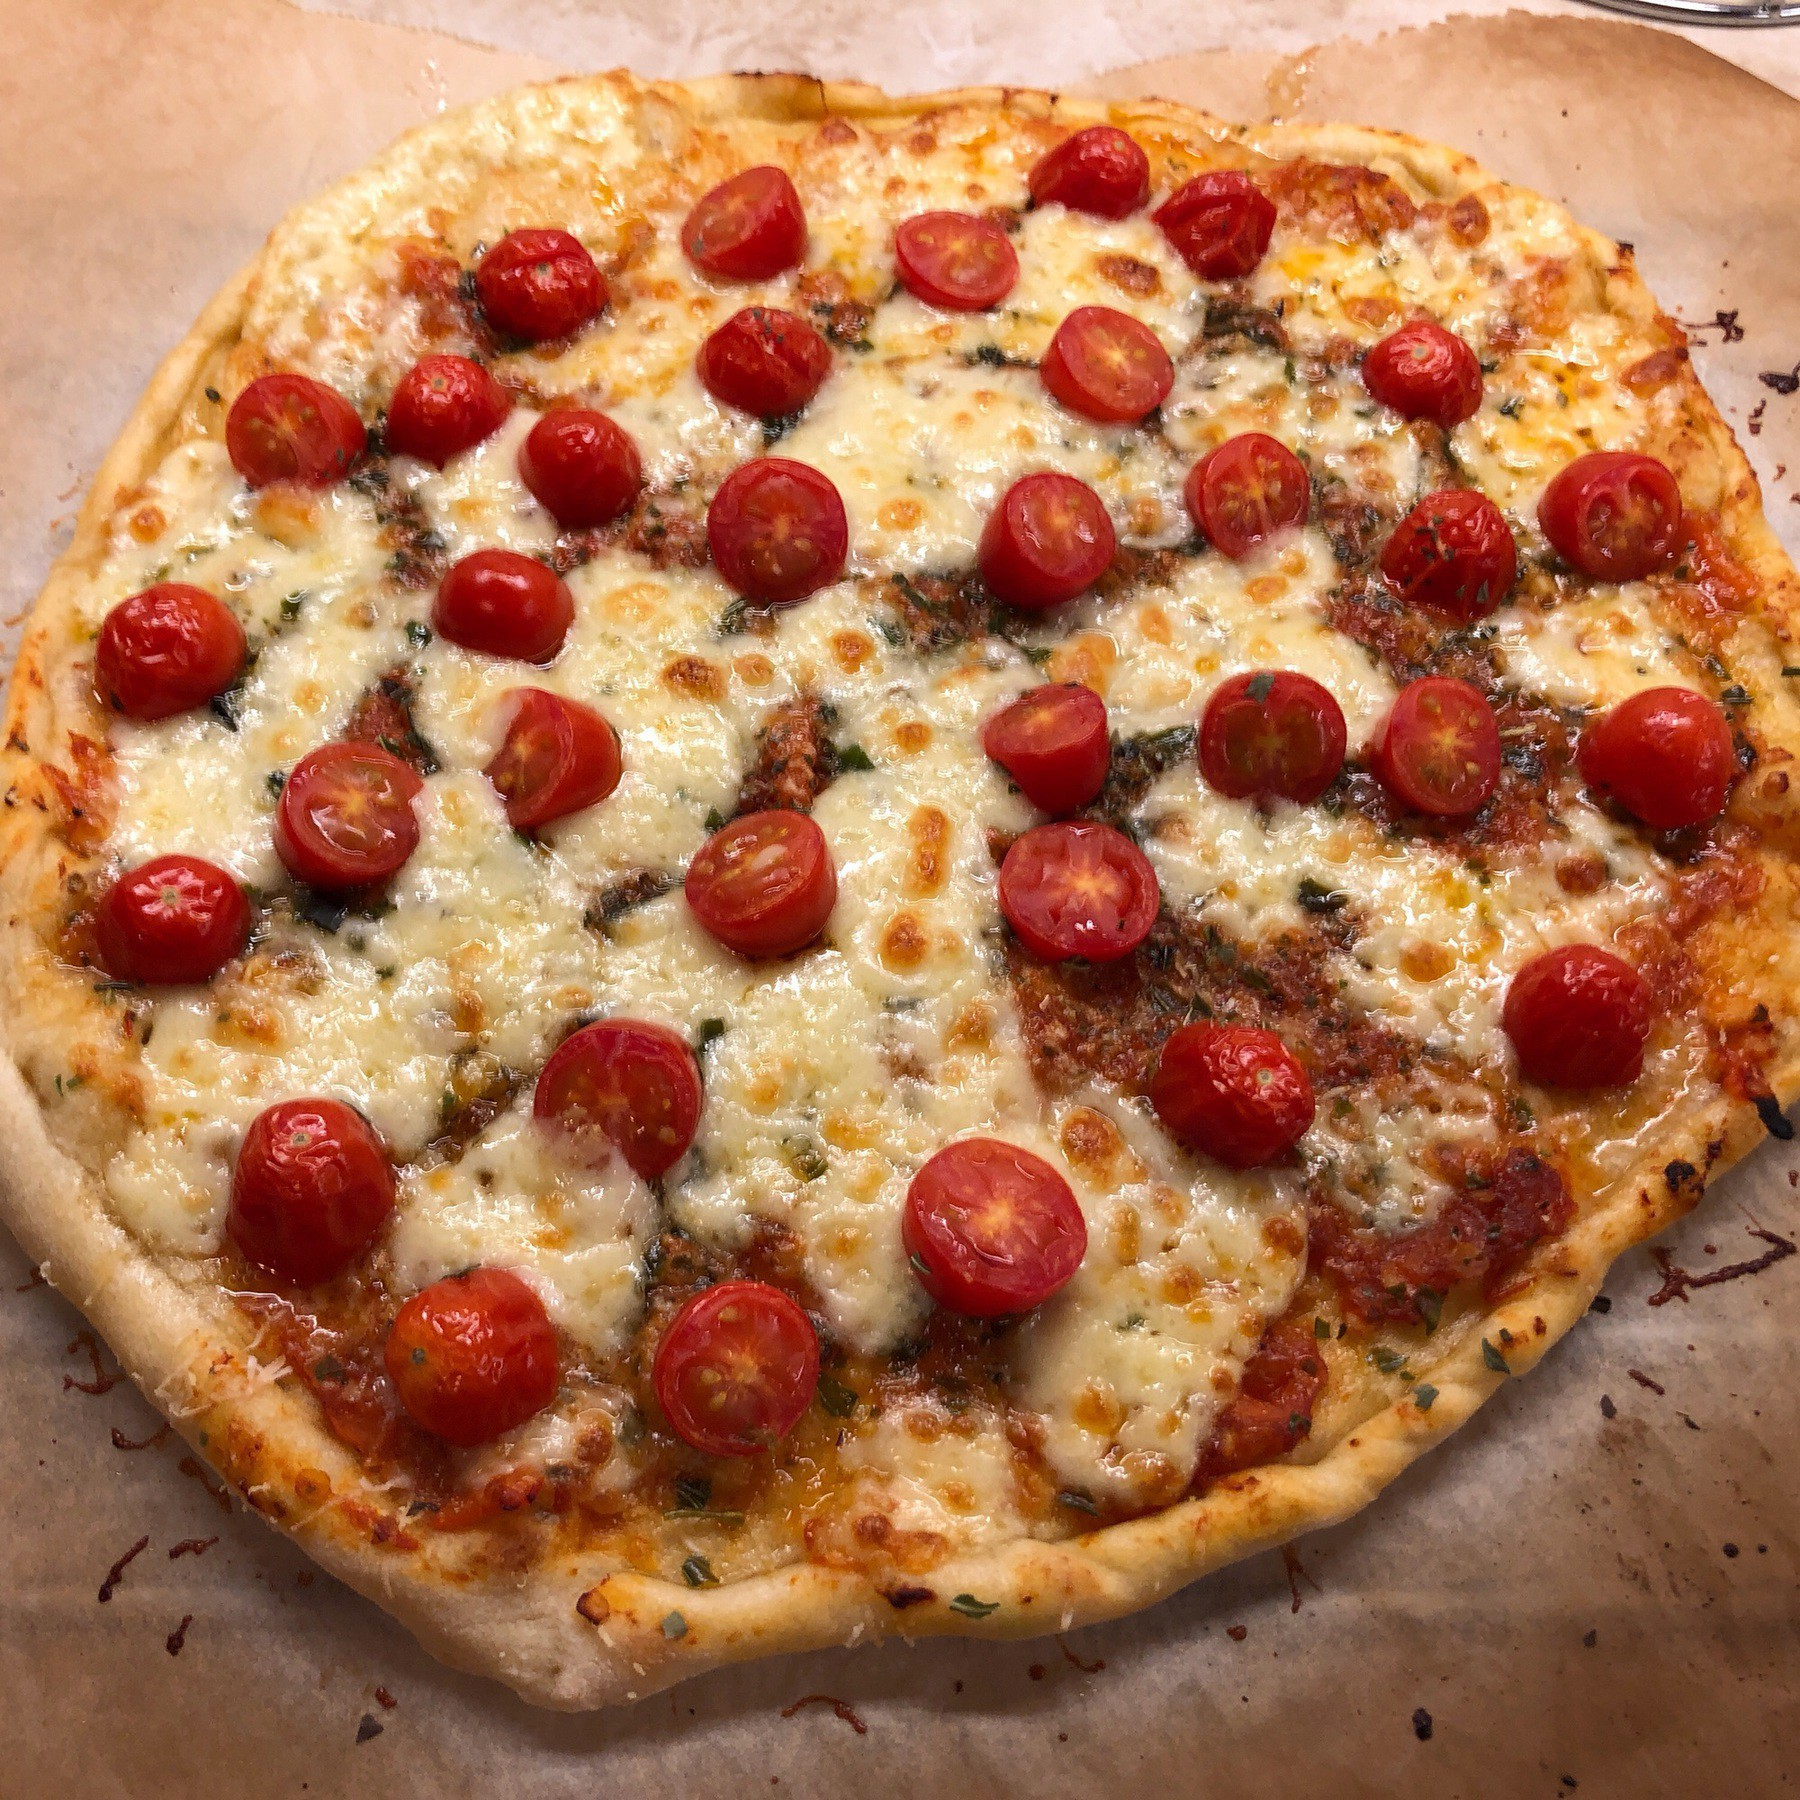 Pizza with small tomatoes on it